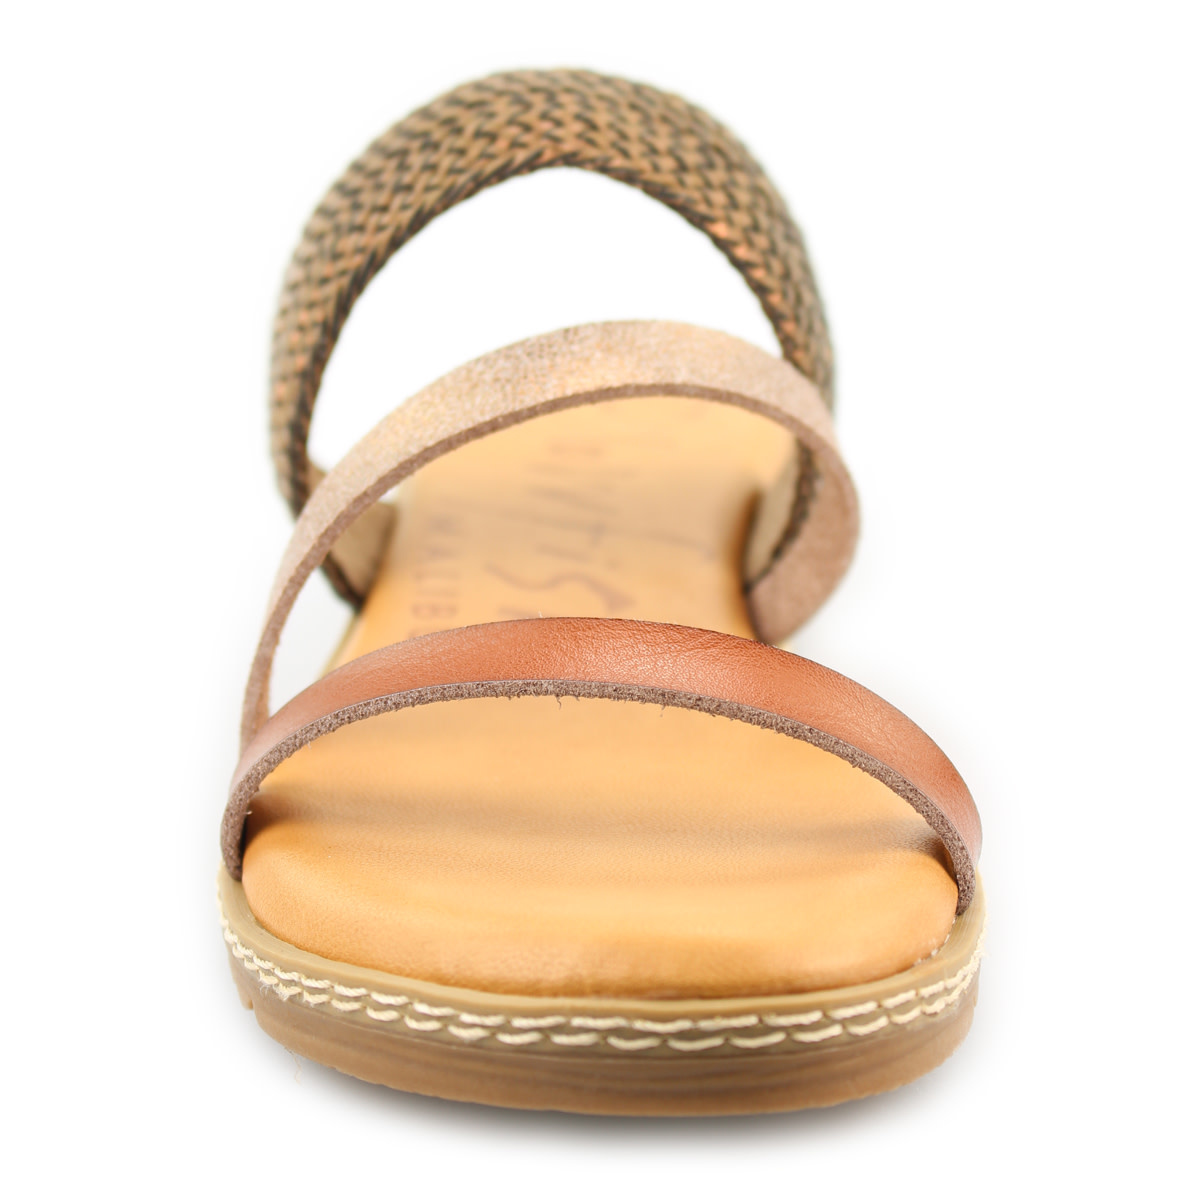 Blowfish Malibu Otsi Braided Flat Sandals -